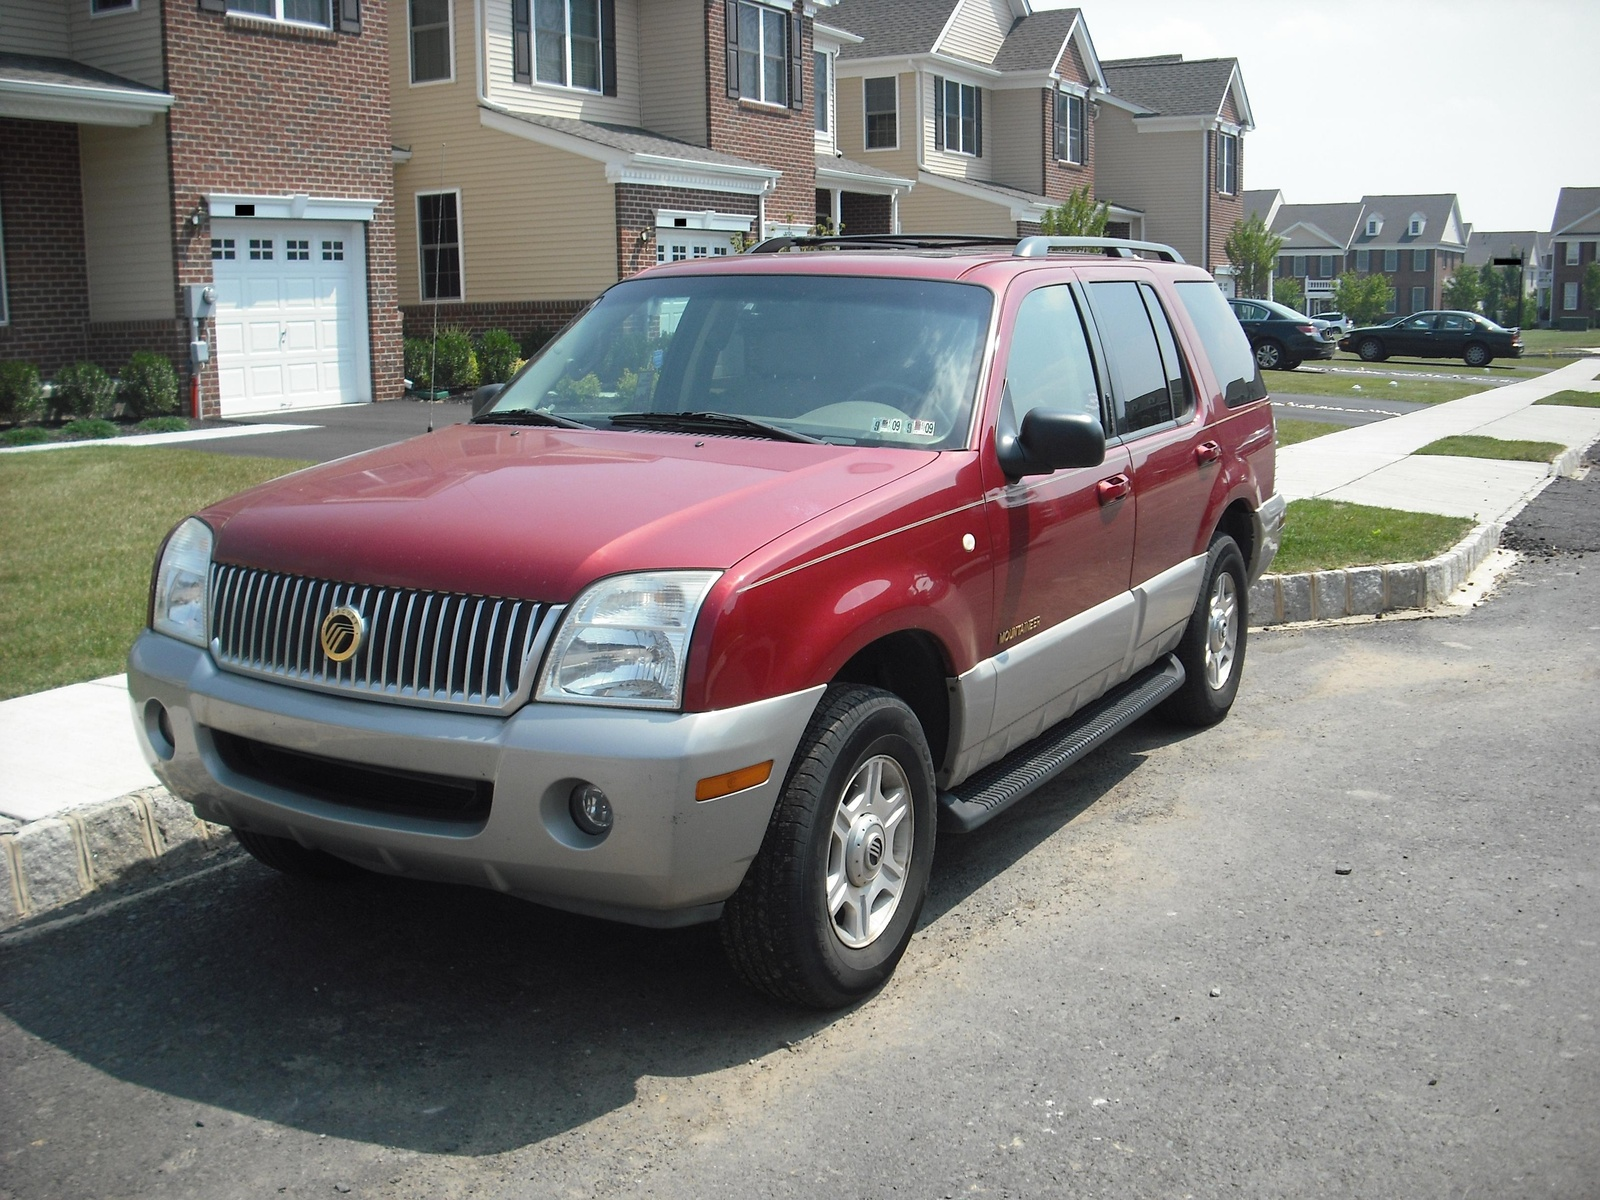 Picture of 2002 Mercury Mountaineer